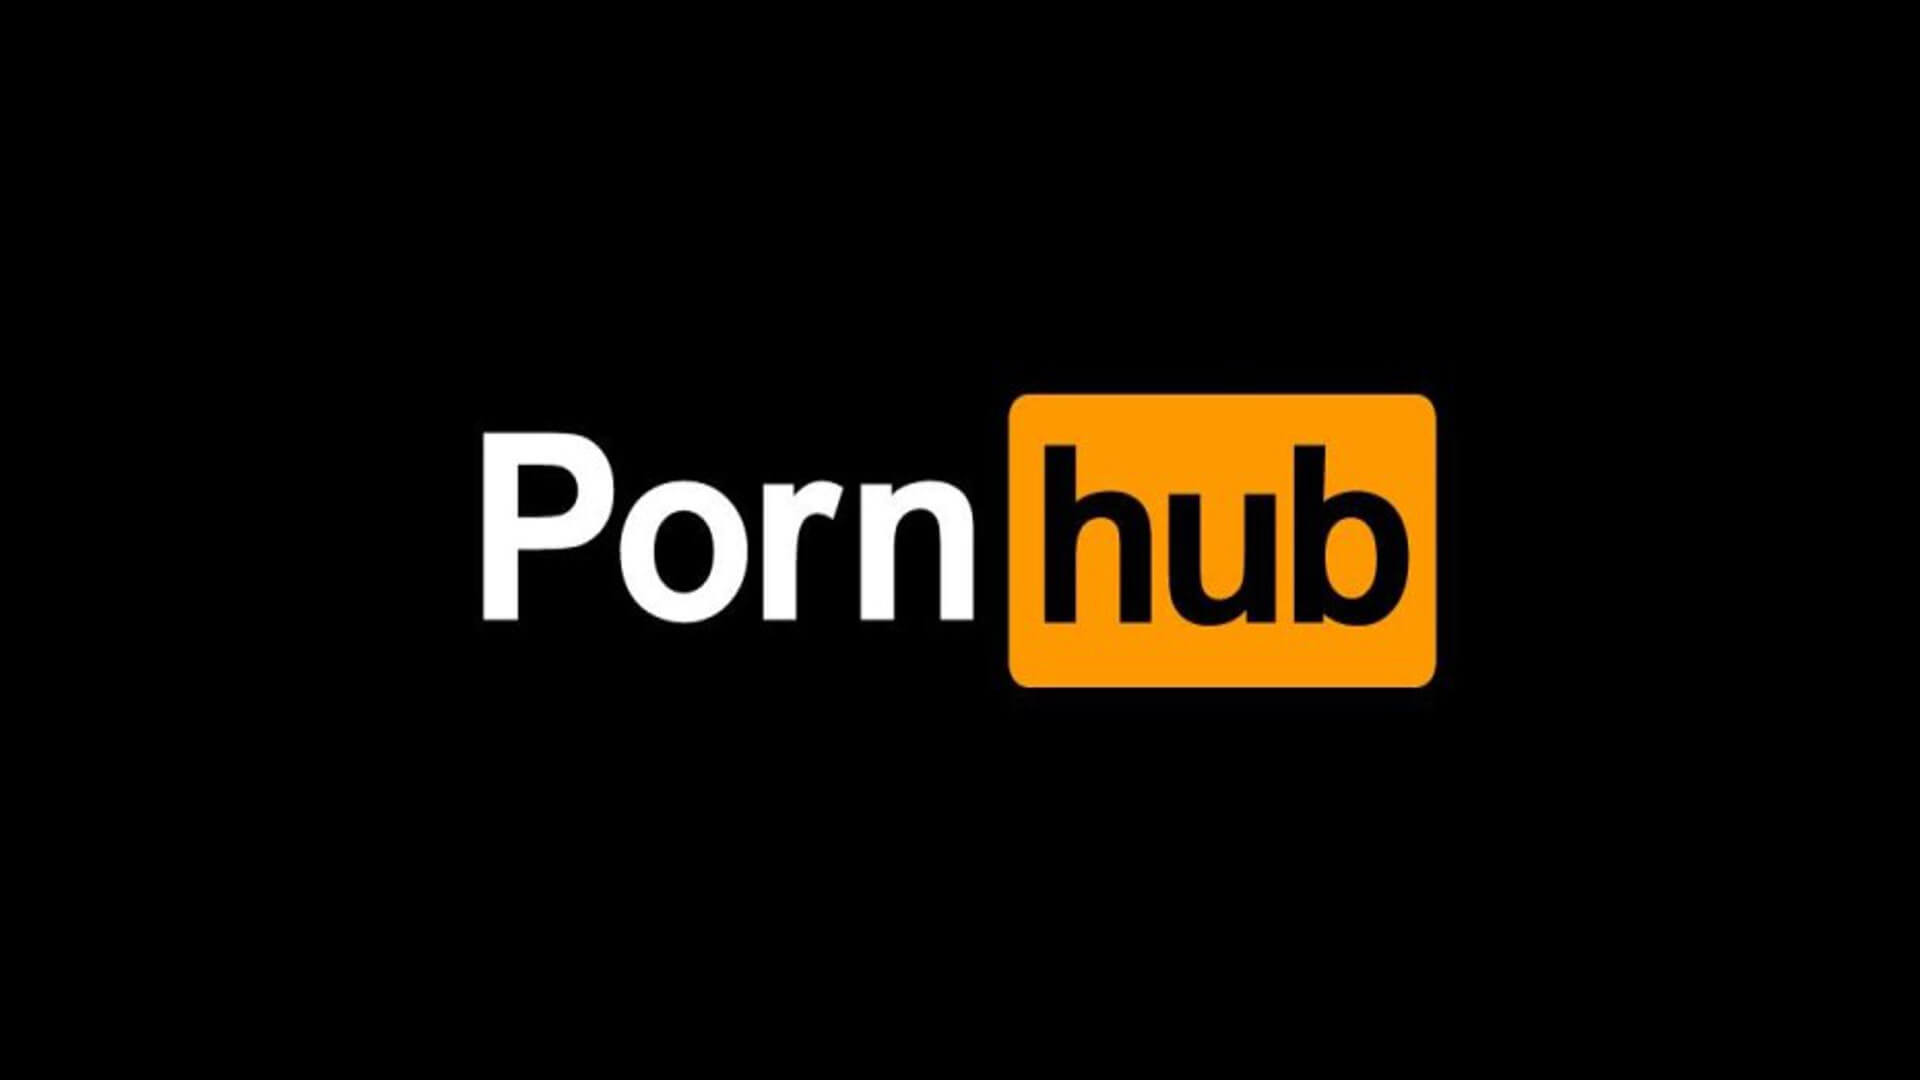 Pornhub Wallpaper Design Ideas – Add Spice to Your Computer With Pink & White Pornstar Paintings!